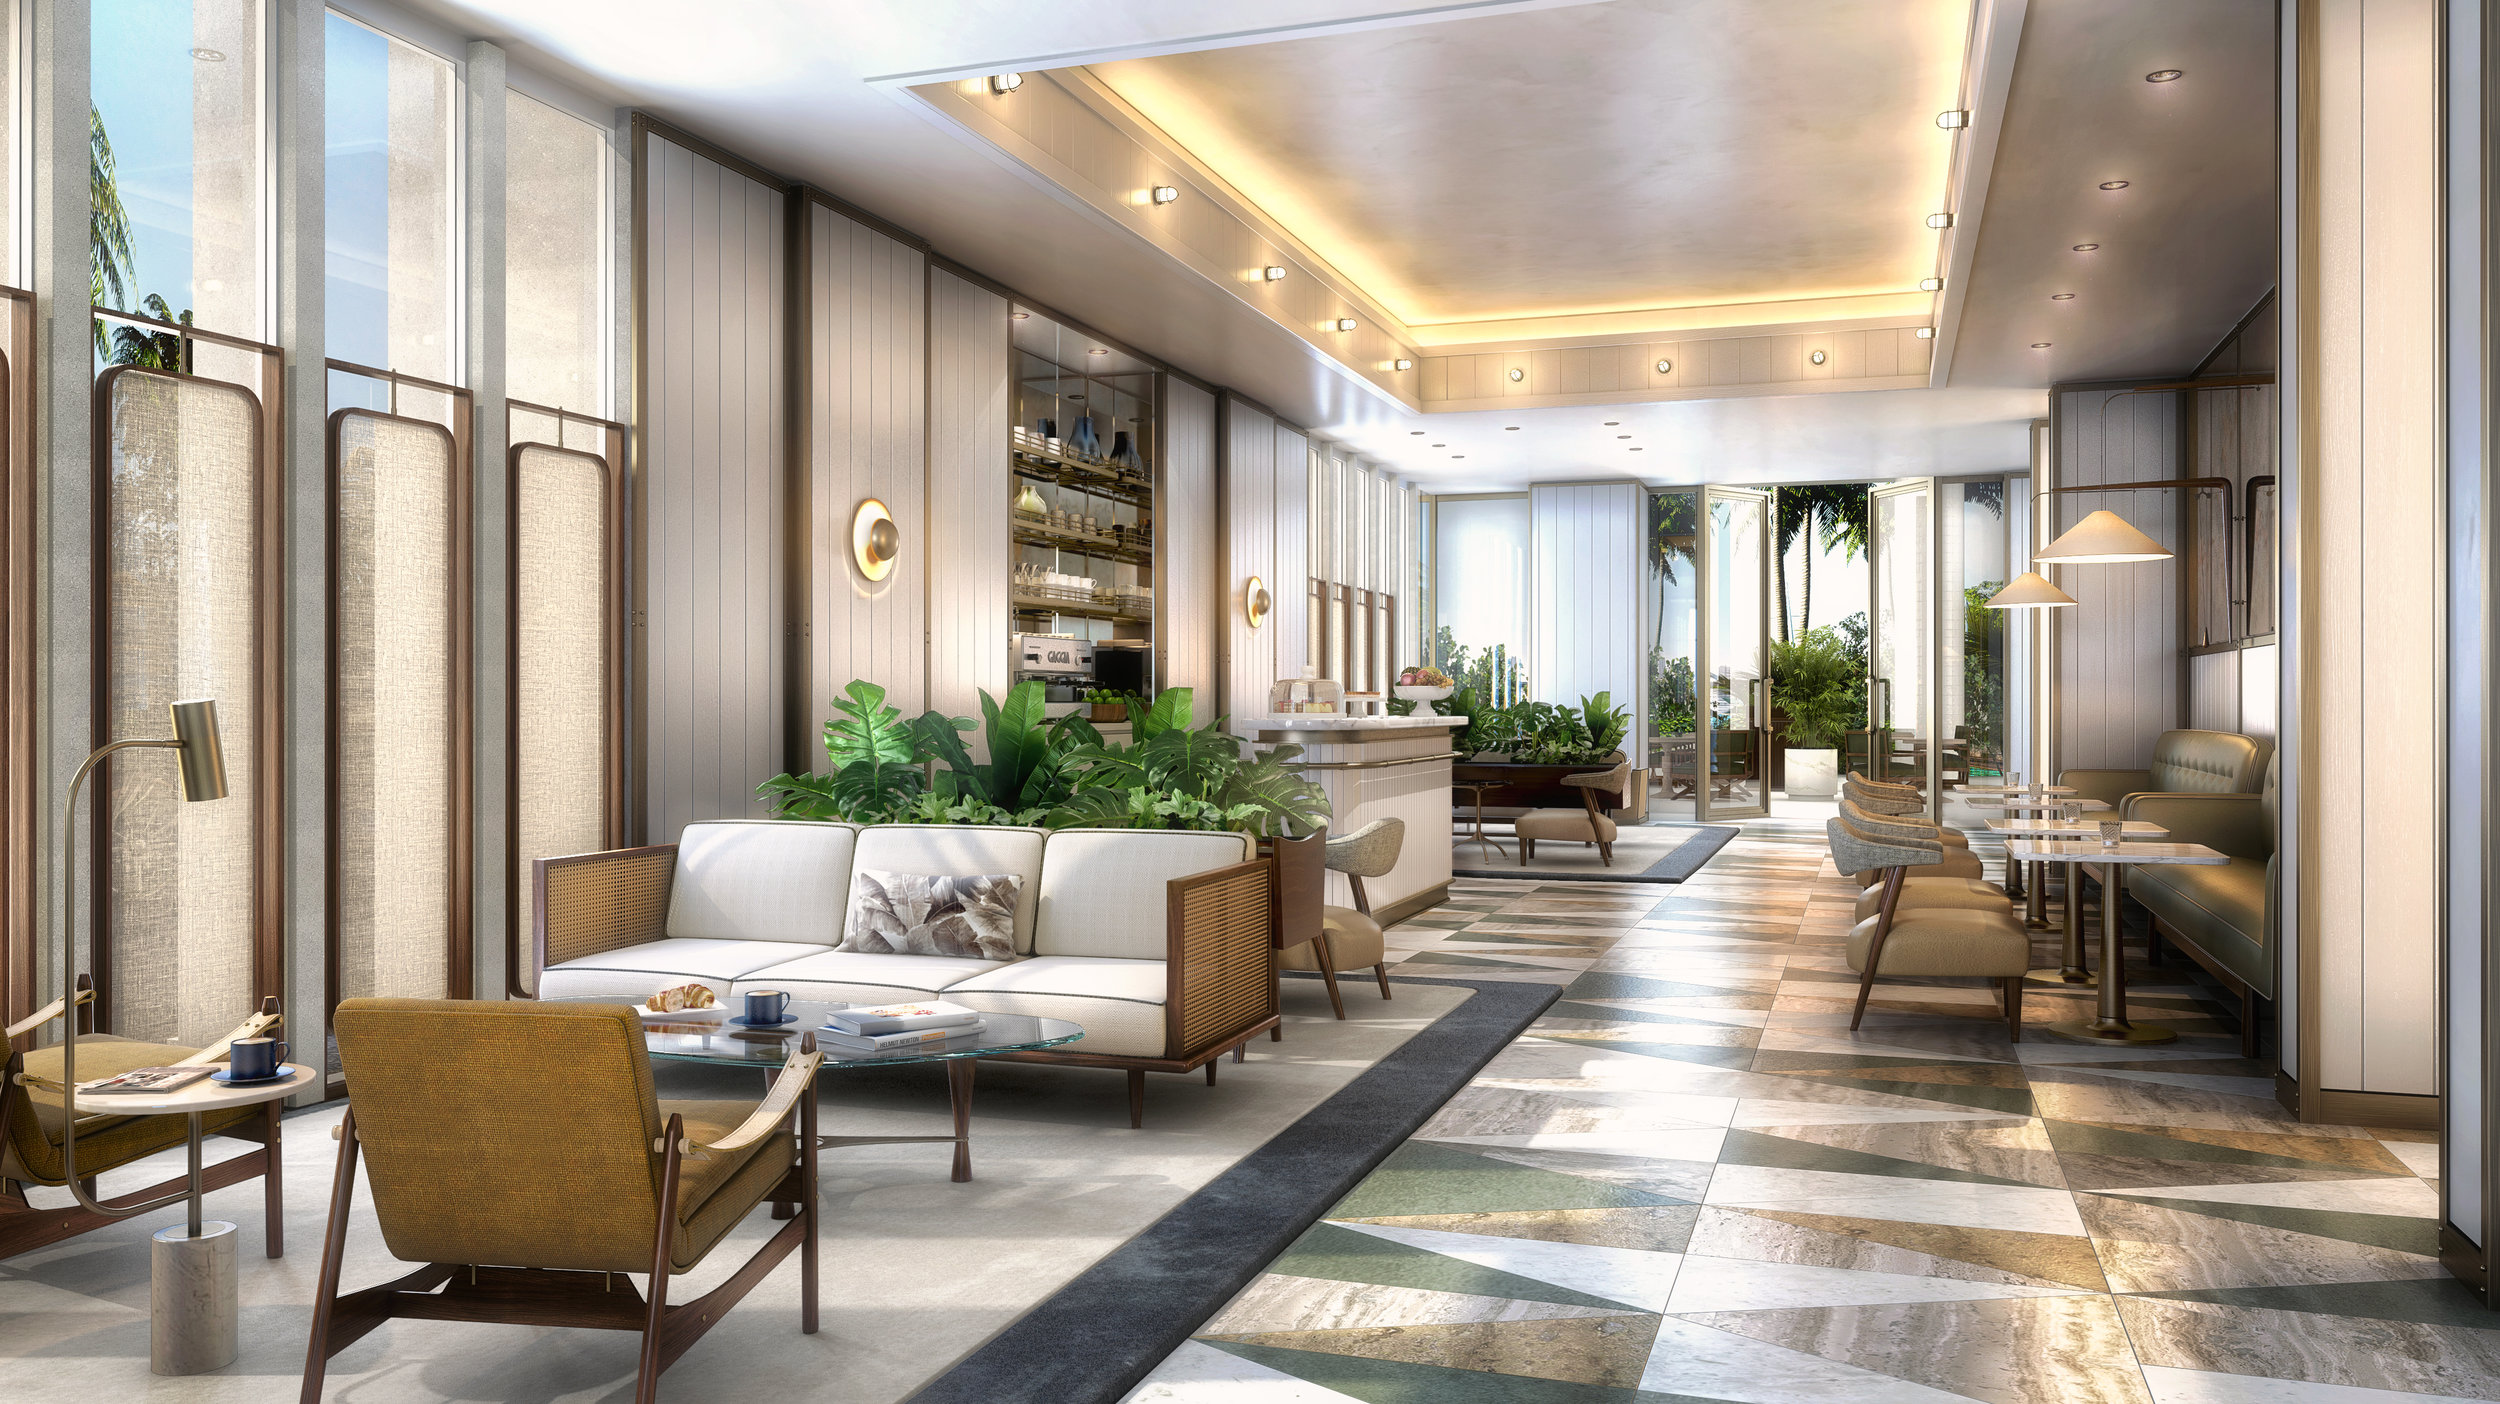 Inside Four Seasons Private Residences Fort Lauderdale, The First Five-Star Development in Broward County